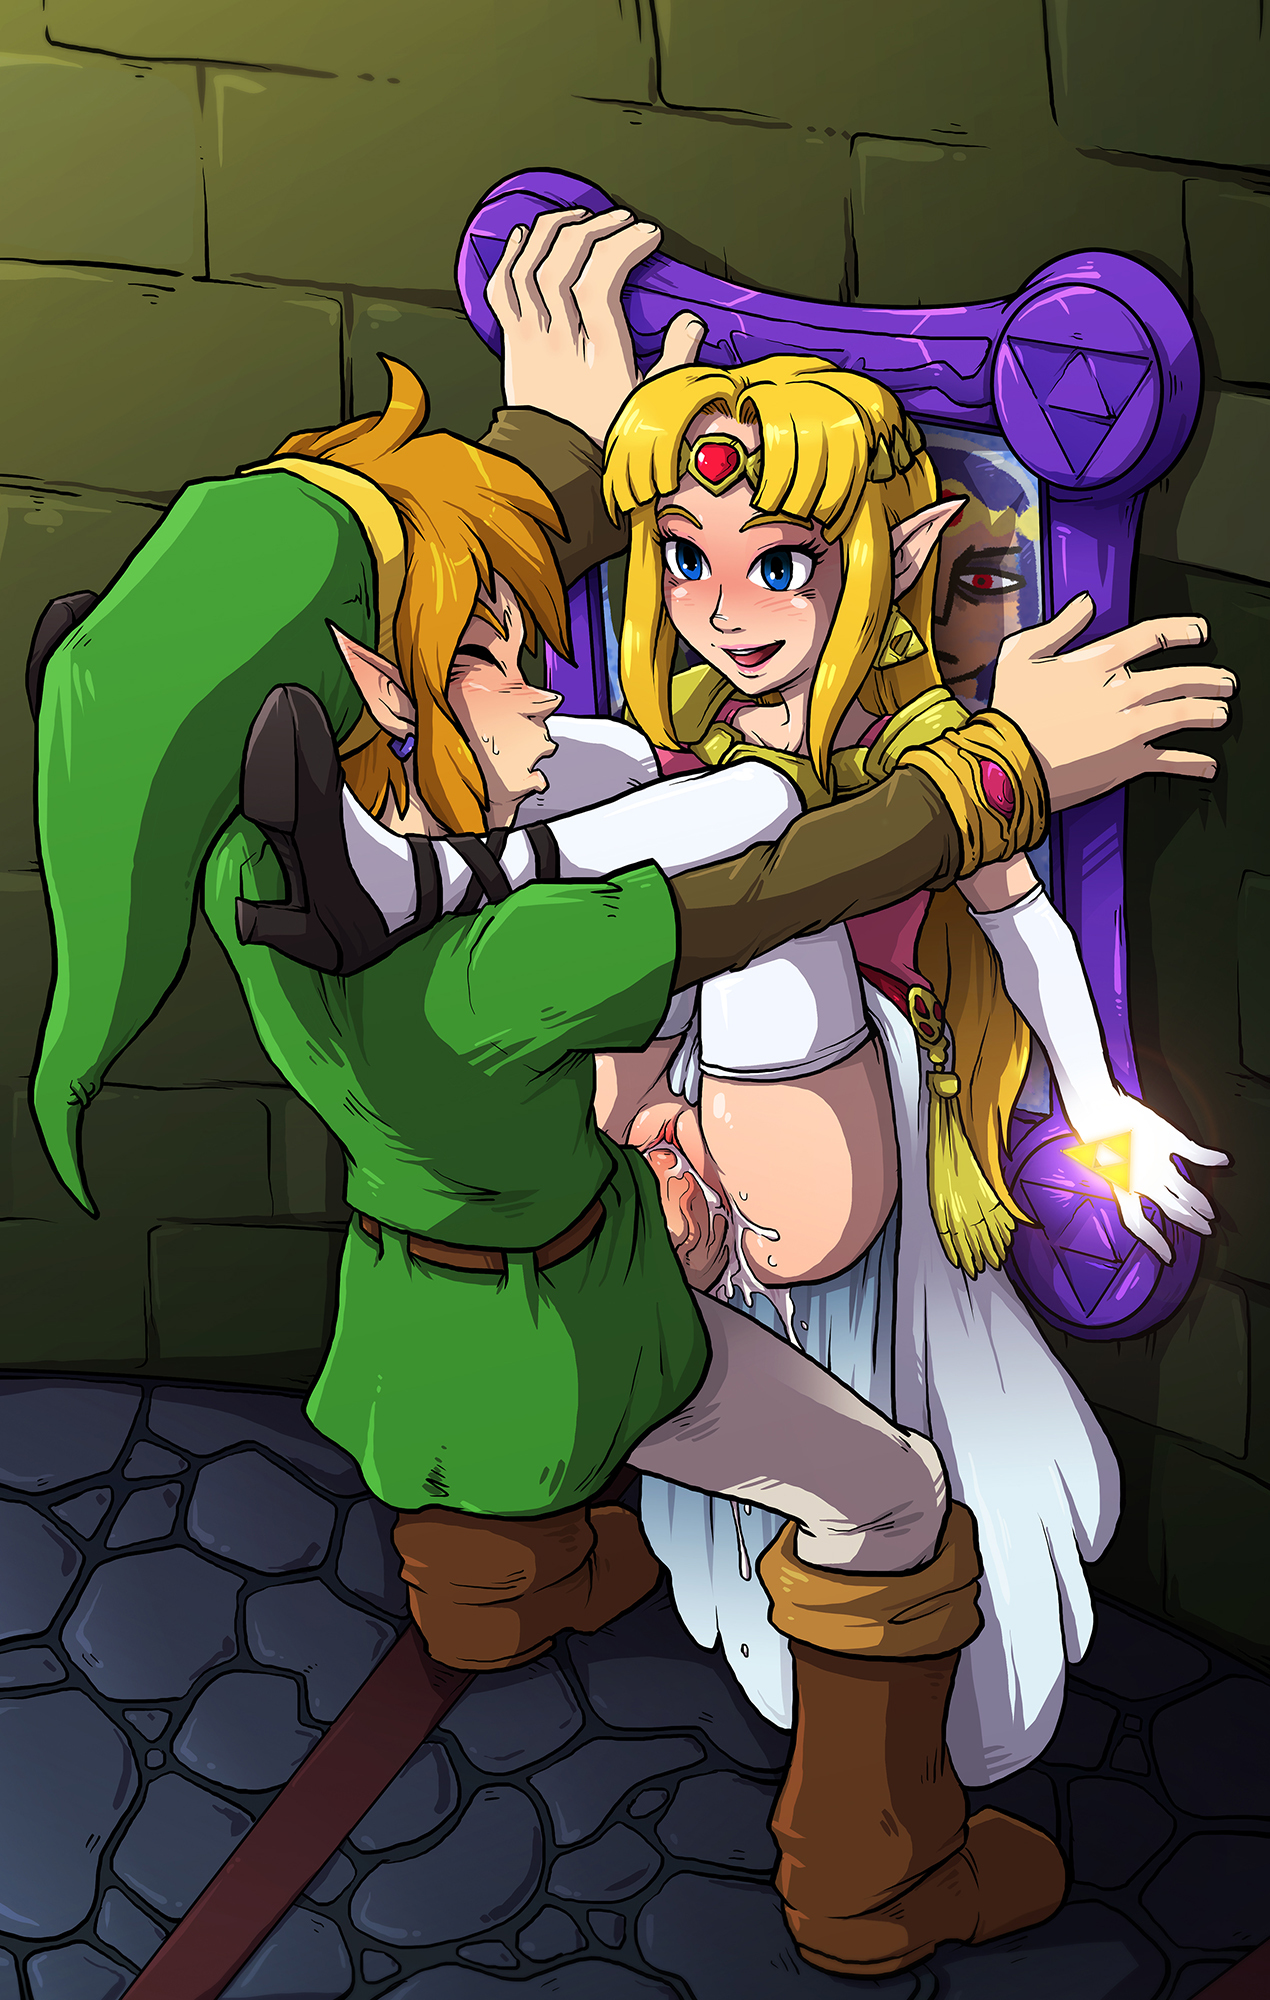 Hentai Princess Fuck intended for link finally got his chance to fuck princess zelda